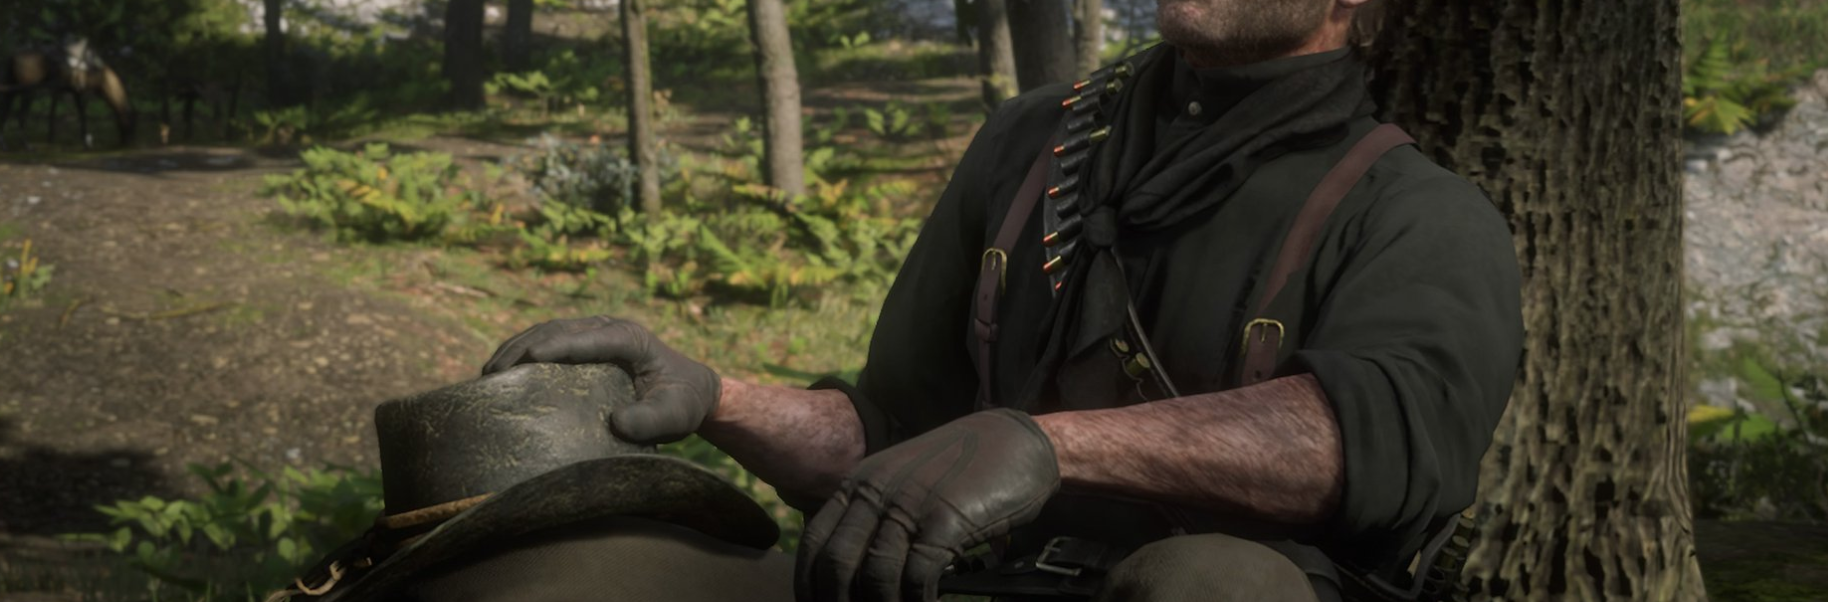 Rdr2 Weight Games And Feelings Tw Vague Mentions Of Eating Disorders By Leen Said Medium